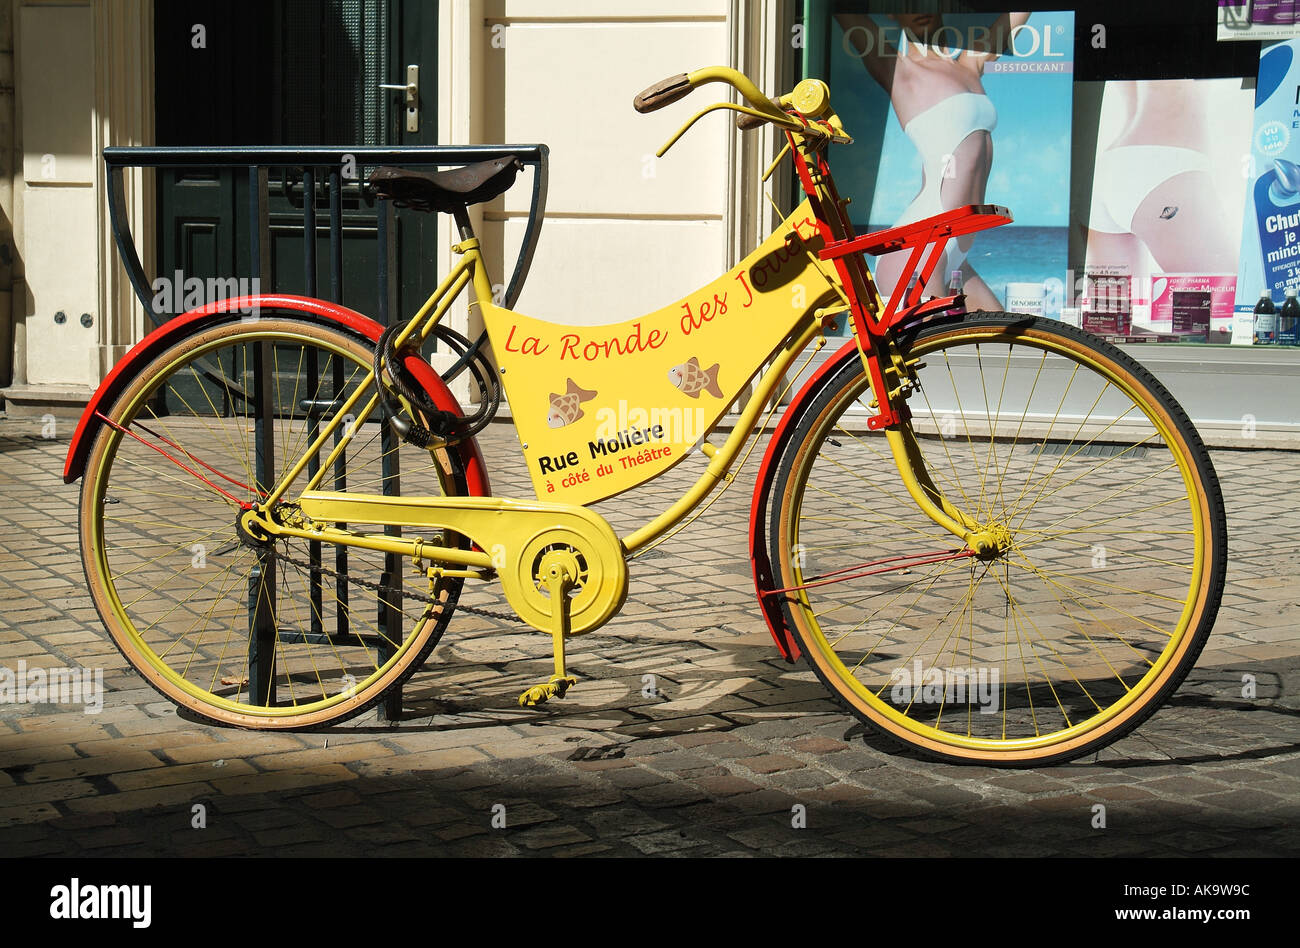 french advertising bicycle, loire valley, france - Stock Image